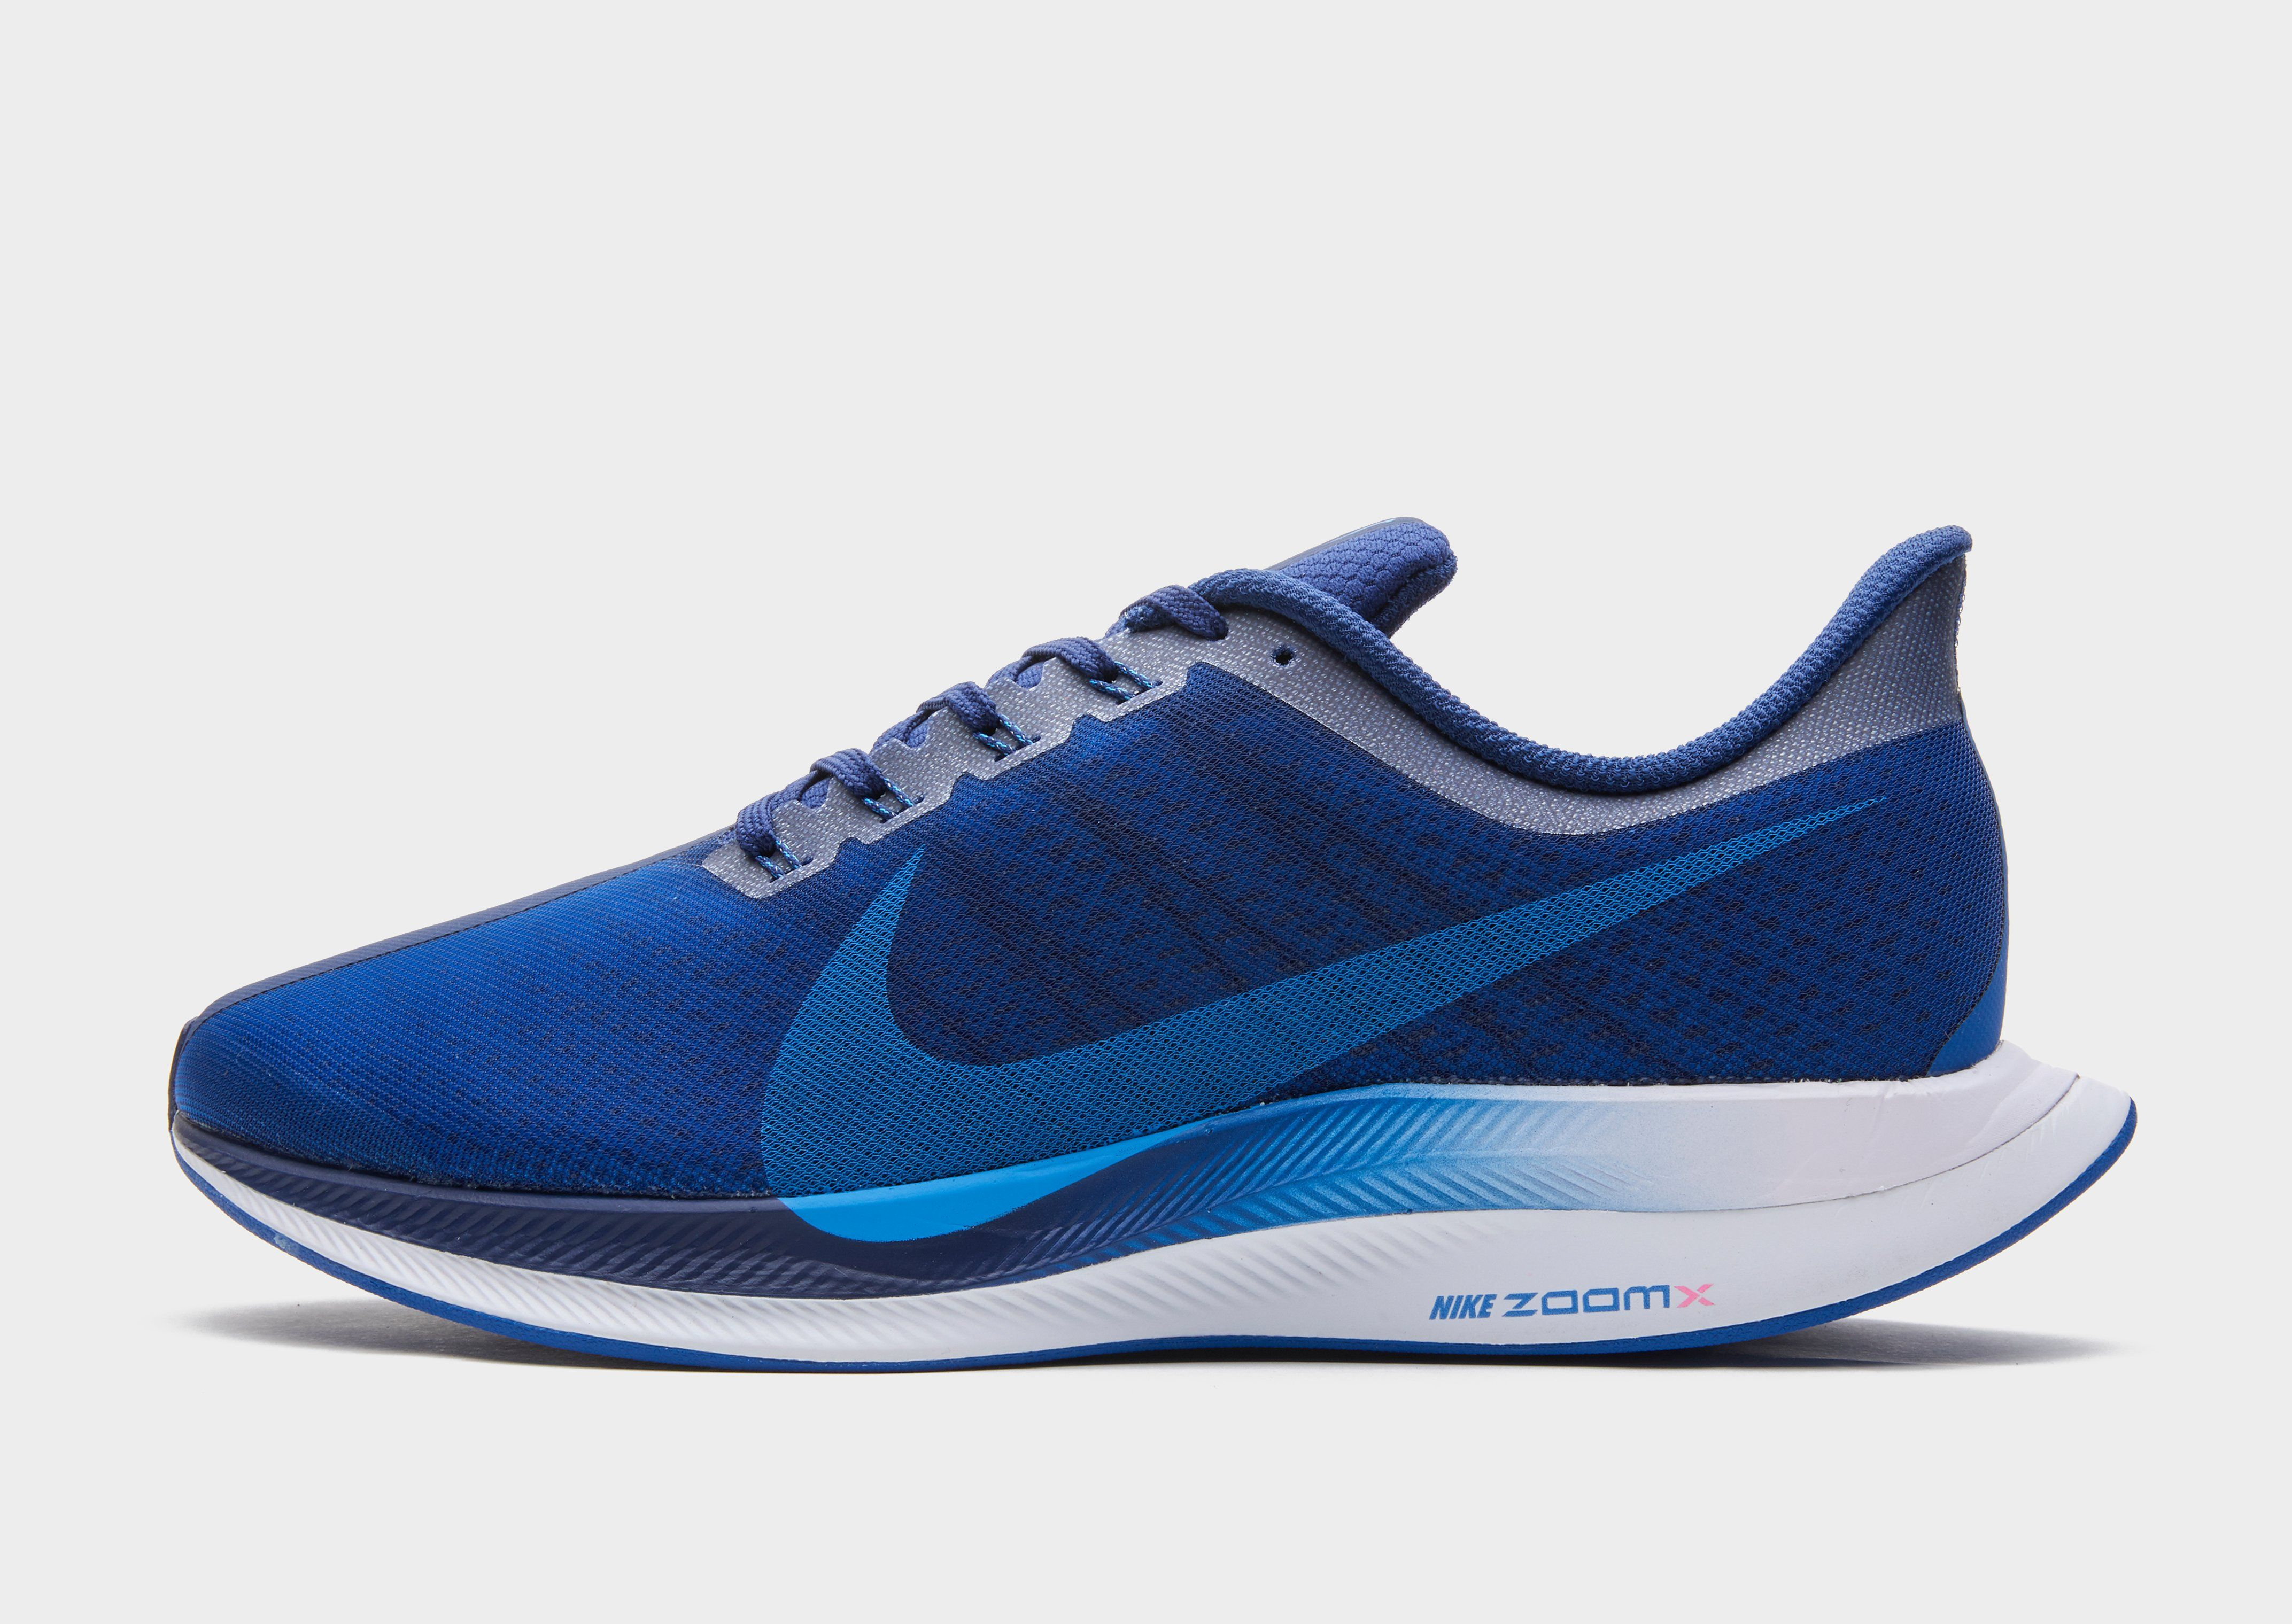 wholesale dealer 81e21 63e21 NIKE Nike Zoom Pegasus Turbo Men s Running Shoe   JD Sports